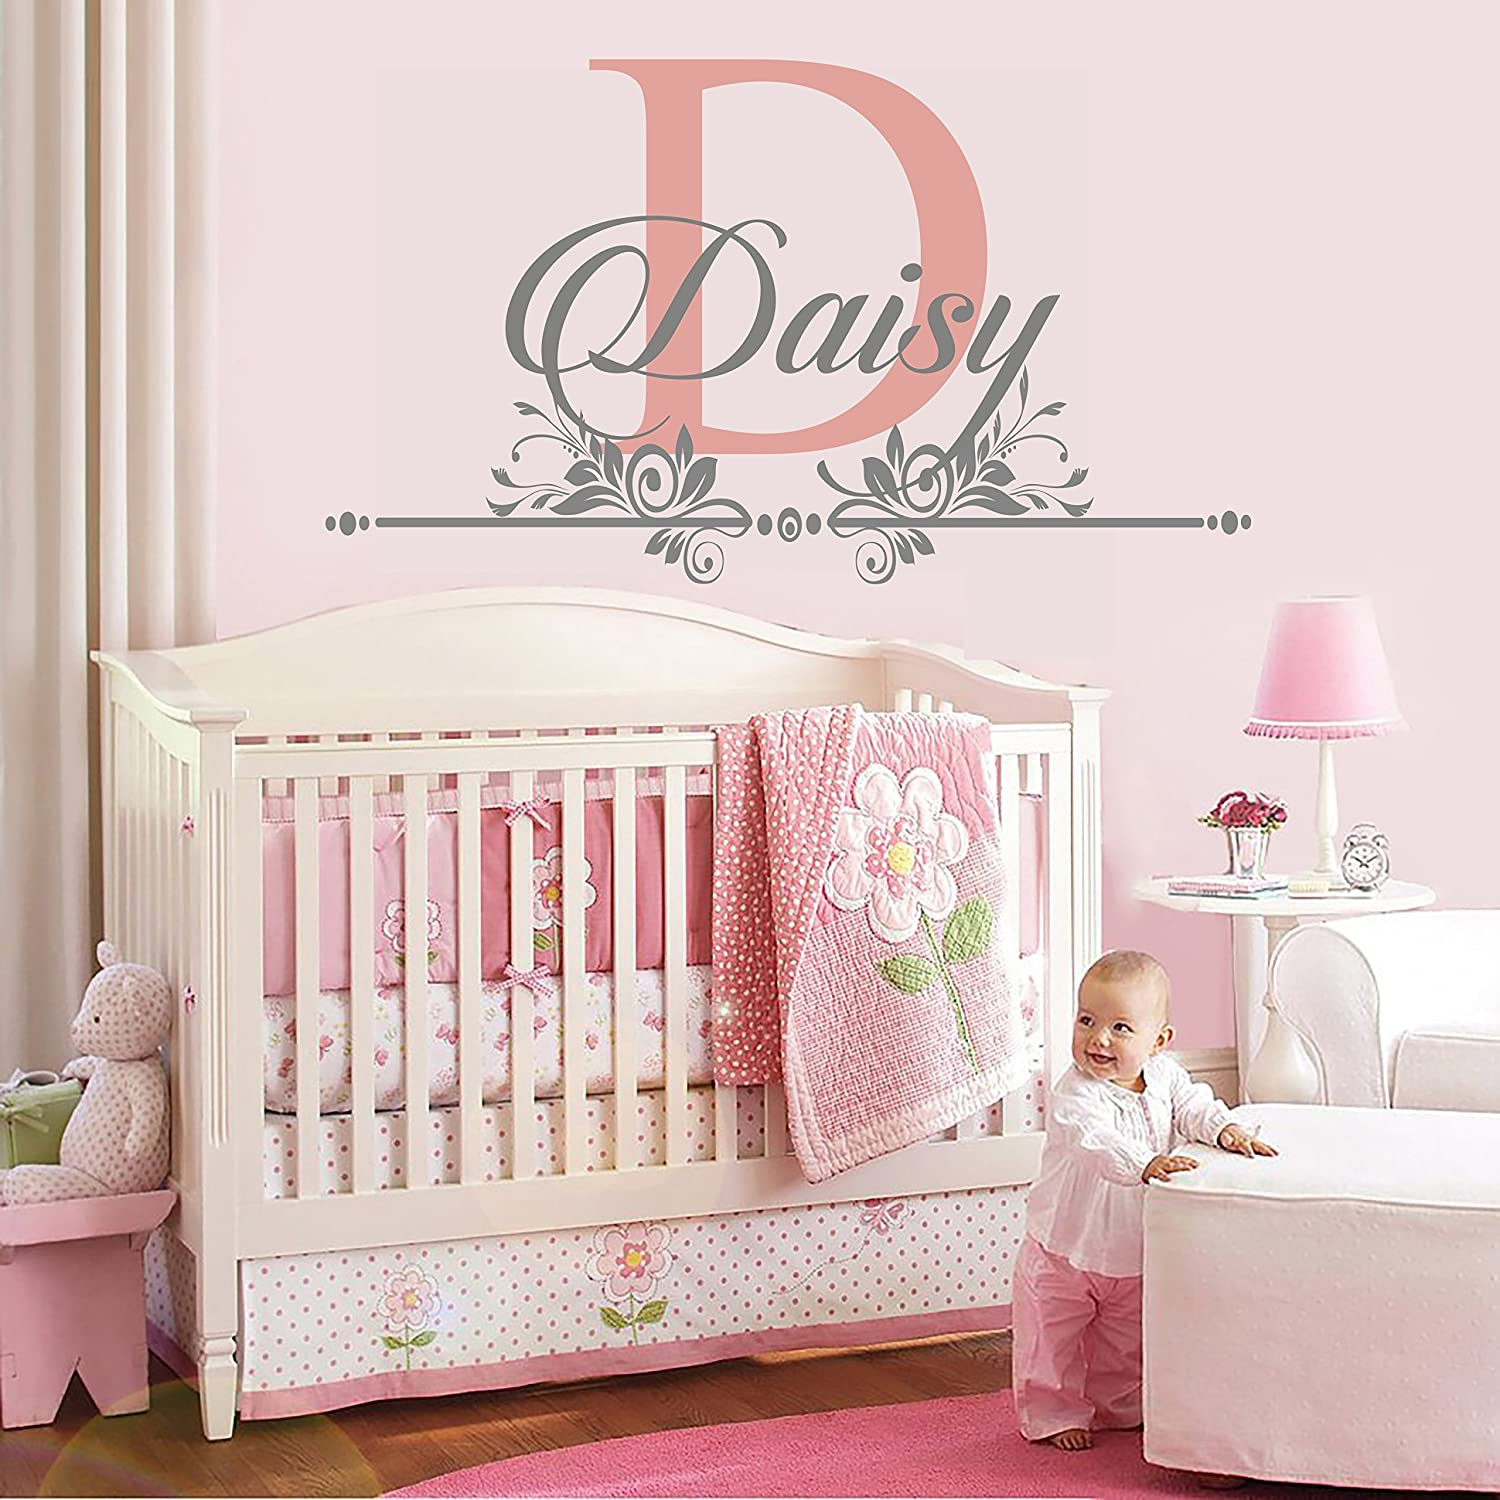 """e-Graphic Design Inc Custom Name and Initial Wall Decal Nursery - Baby Girl Decoration - Mural Wall Decal Sticker for Home Interior Decoration Car Laptop (M283) (Wide 22"""" x 12"""" Height)"""